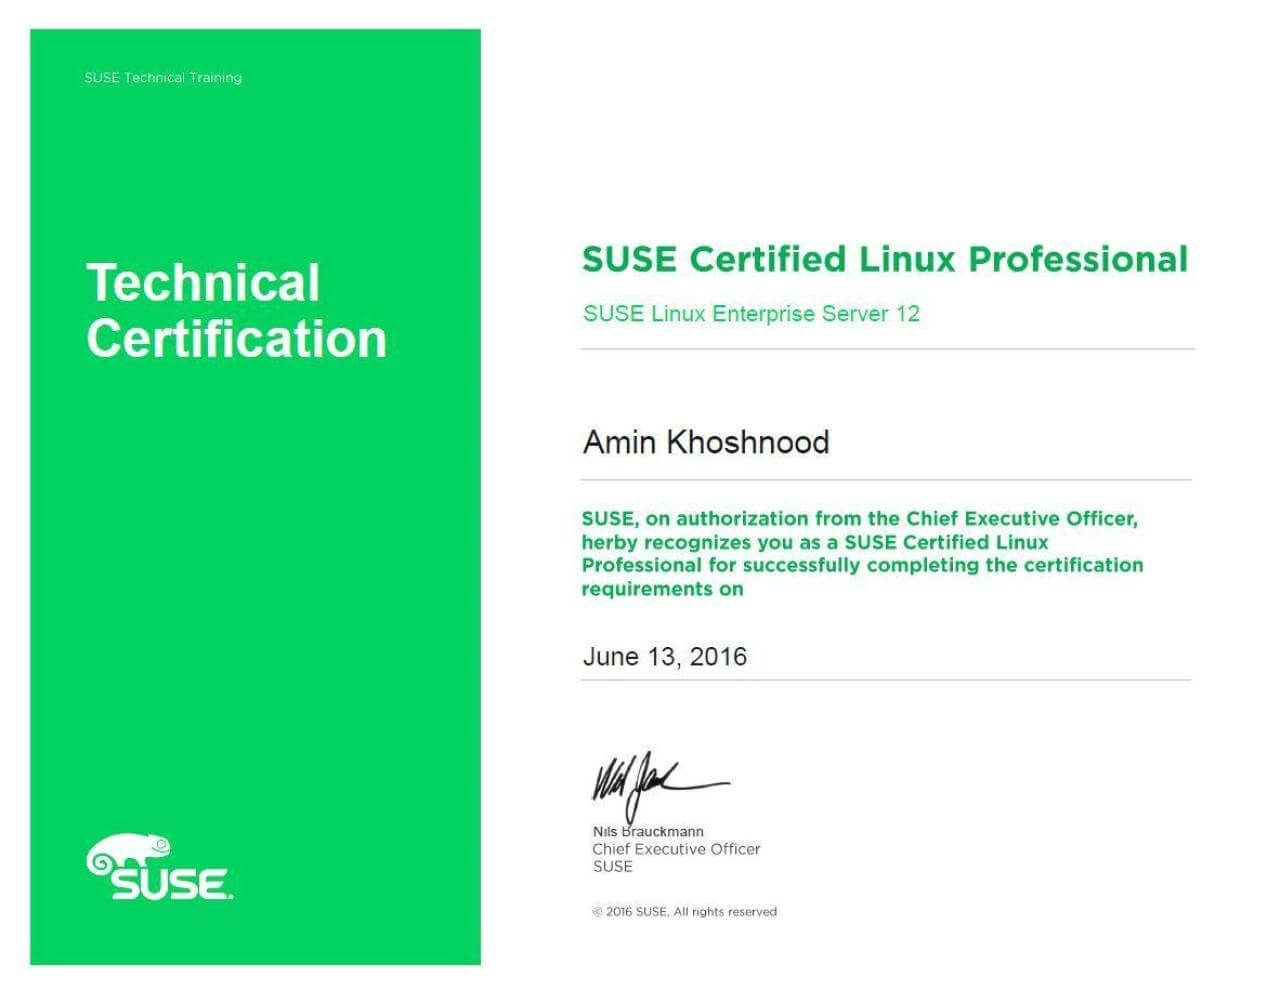 SUSE Certified Linux Professional 12